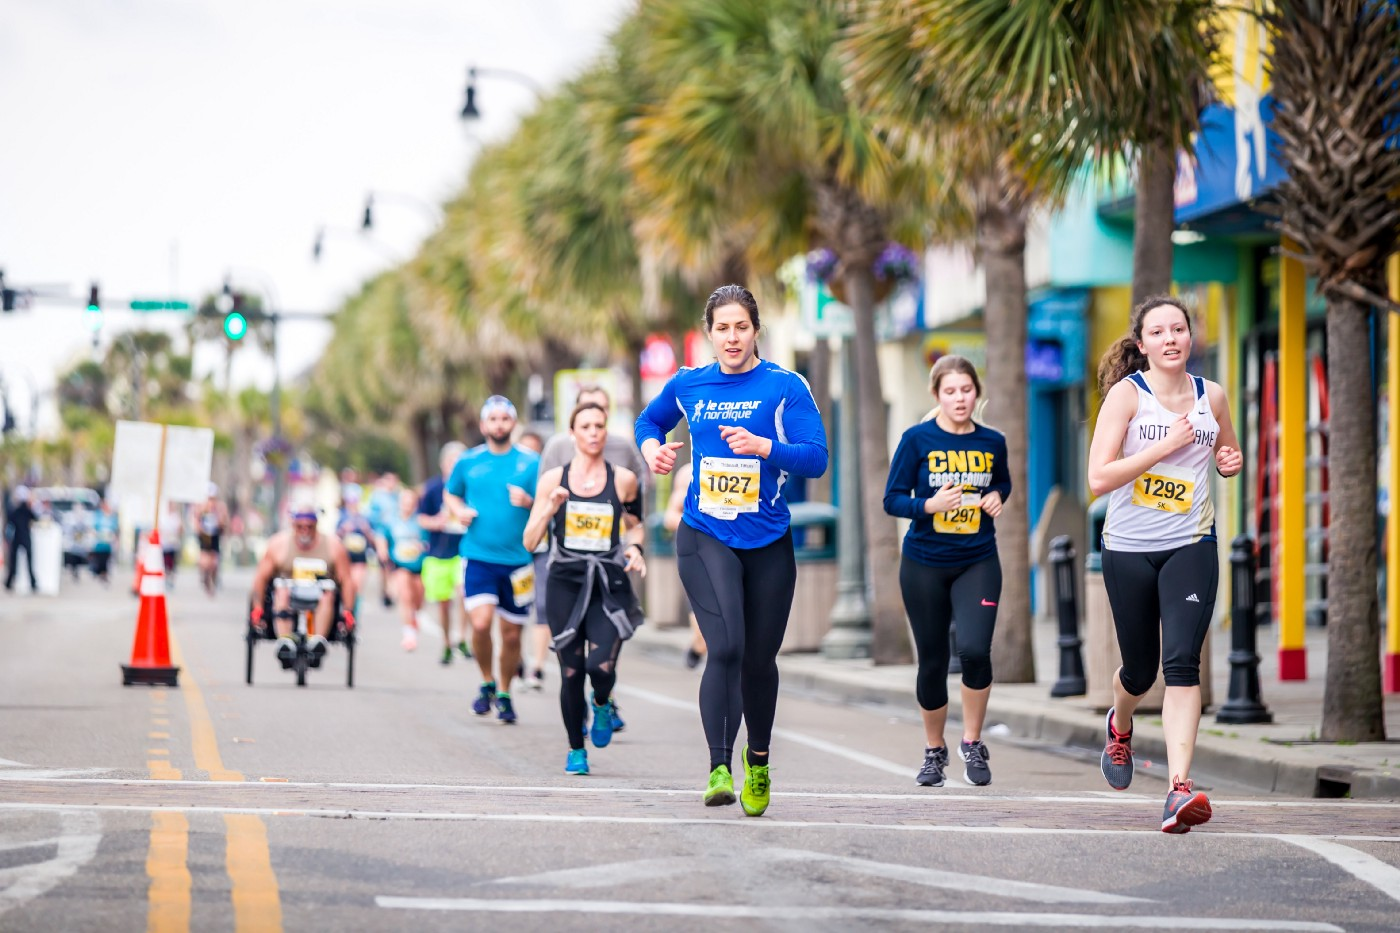 Runners in a marathon. There is also a man in a wheel chair far behind the team of runners. They are running on a city street. Palm trees line the street.